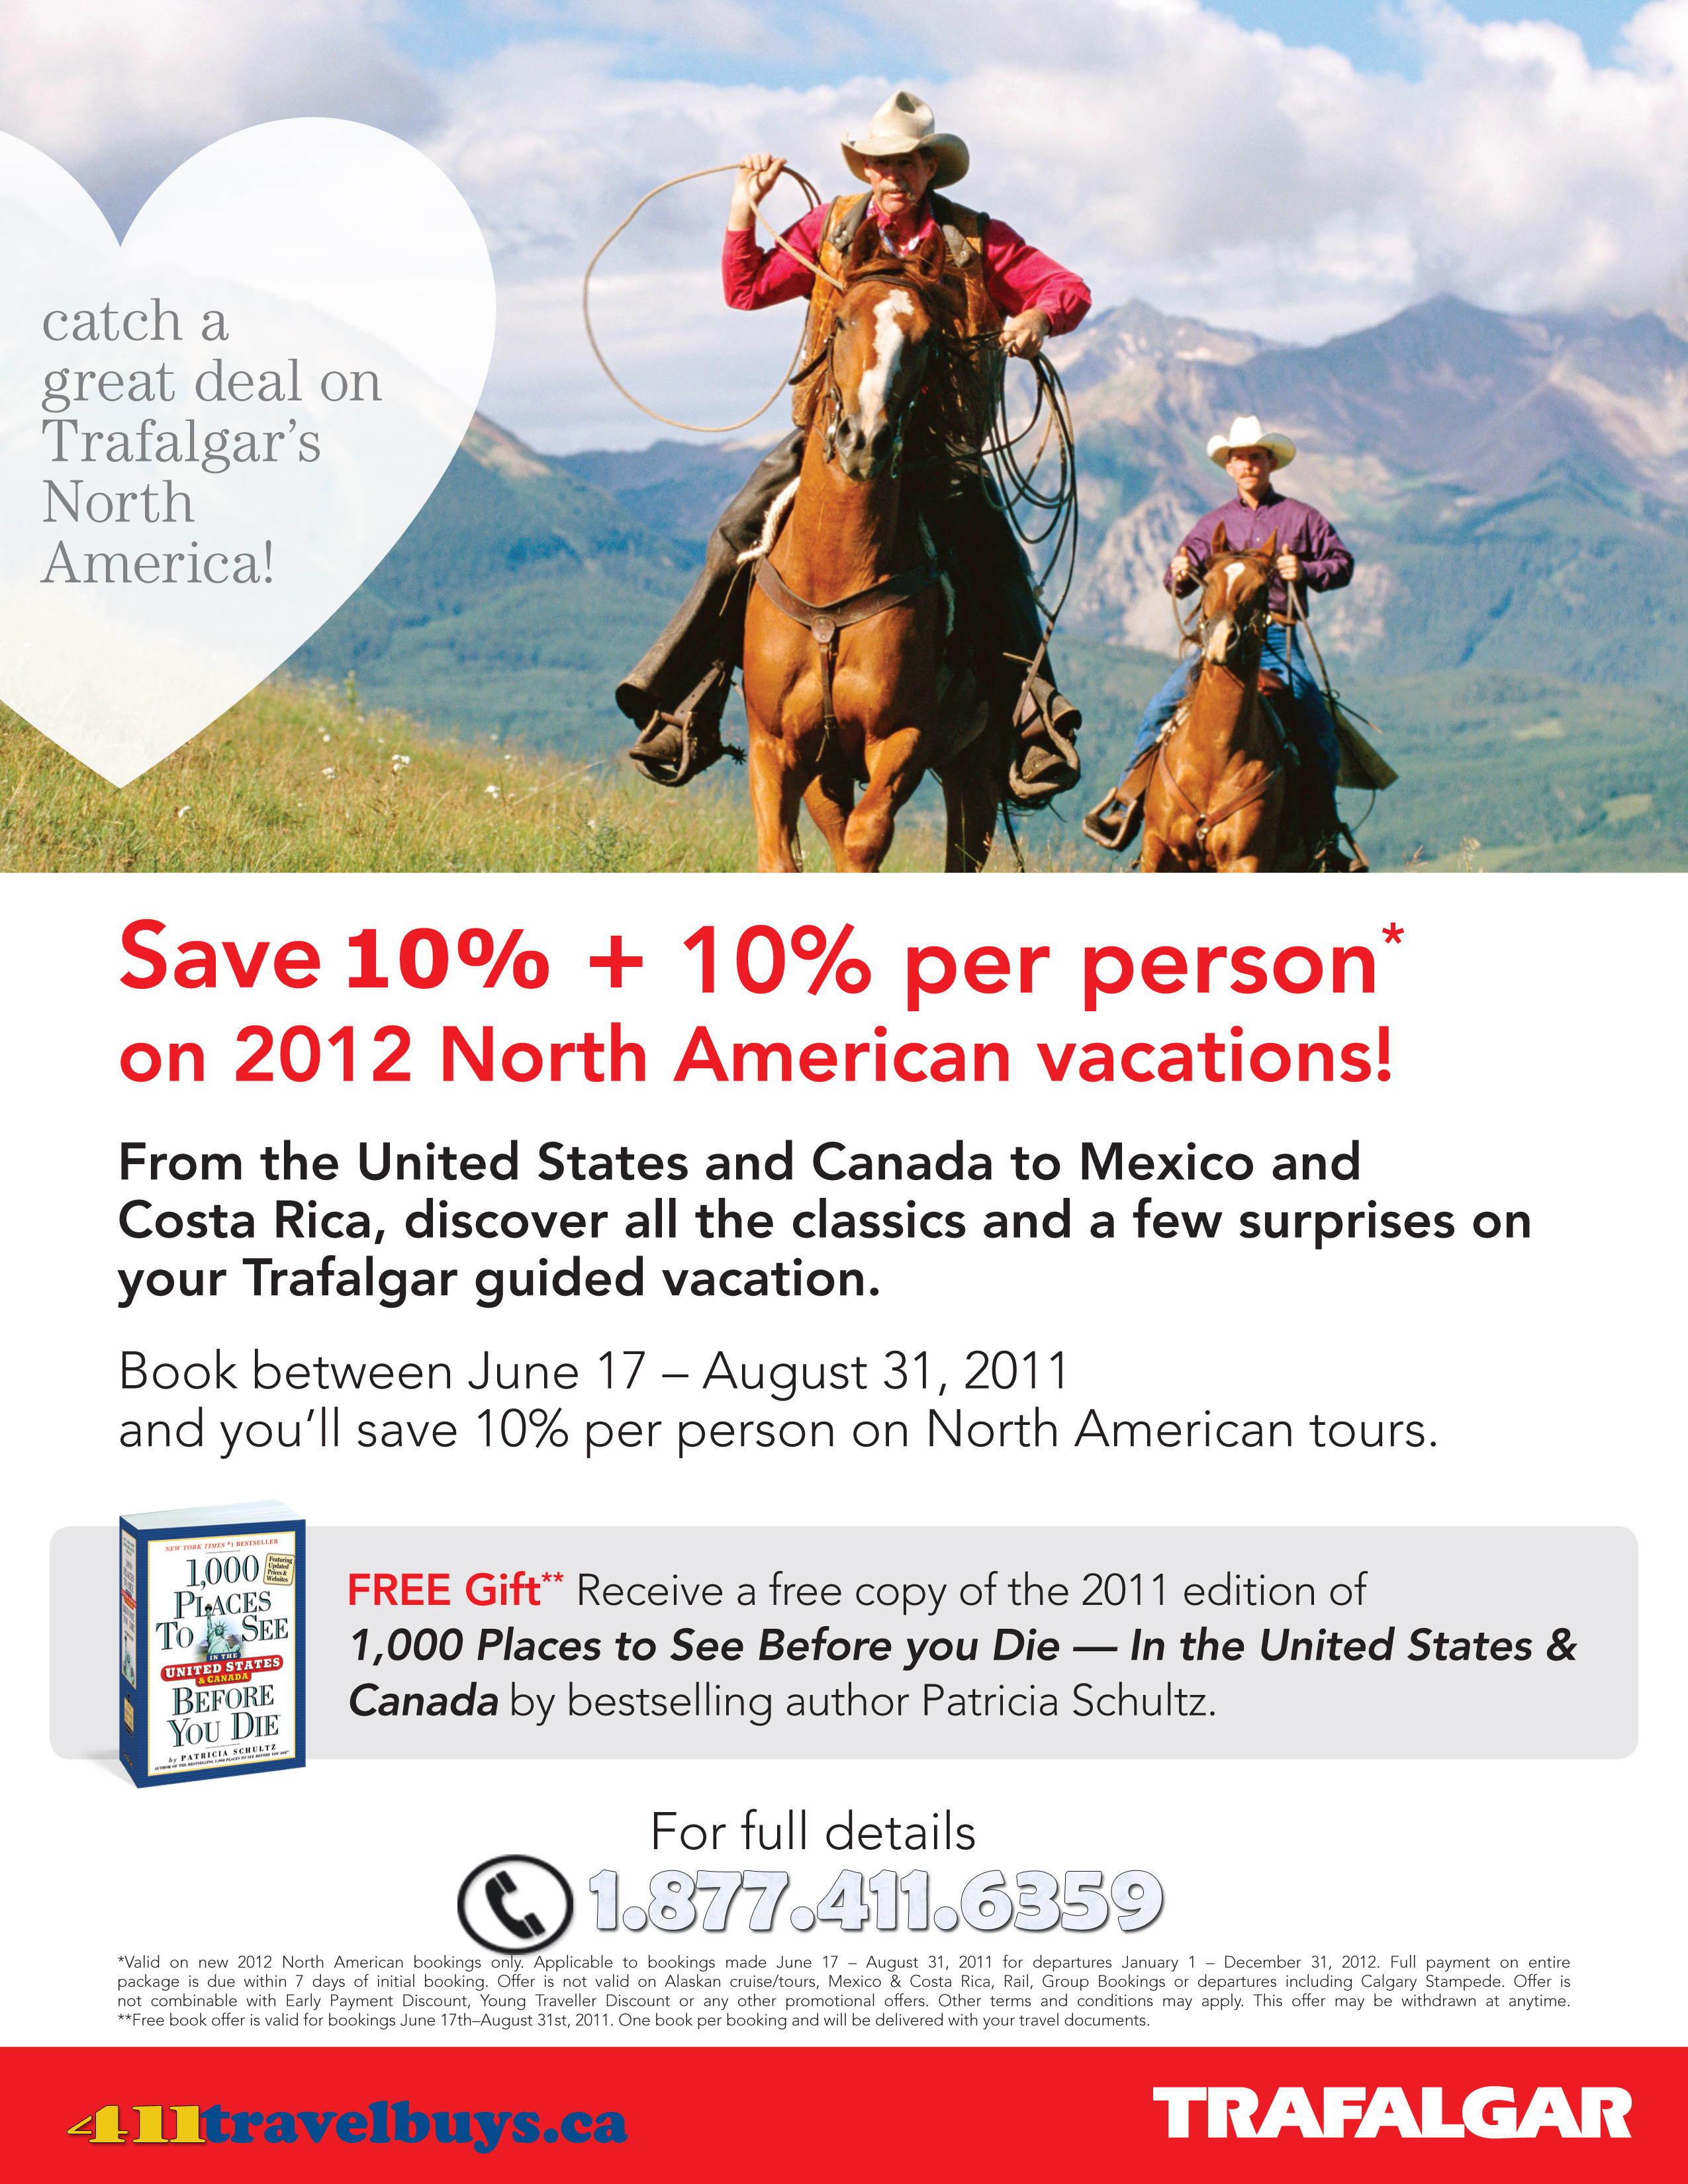 Lock in 2012 Early Guaranteed Price and Save 10% + 10% with Trafalgar!